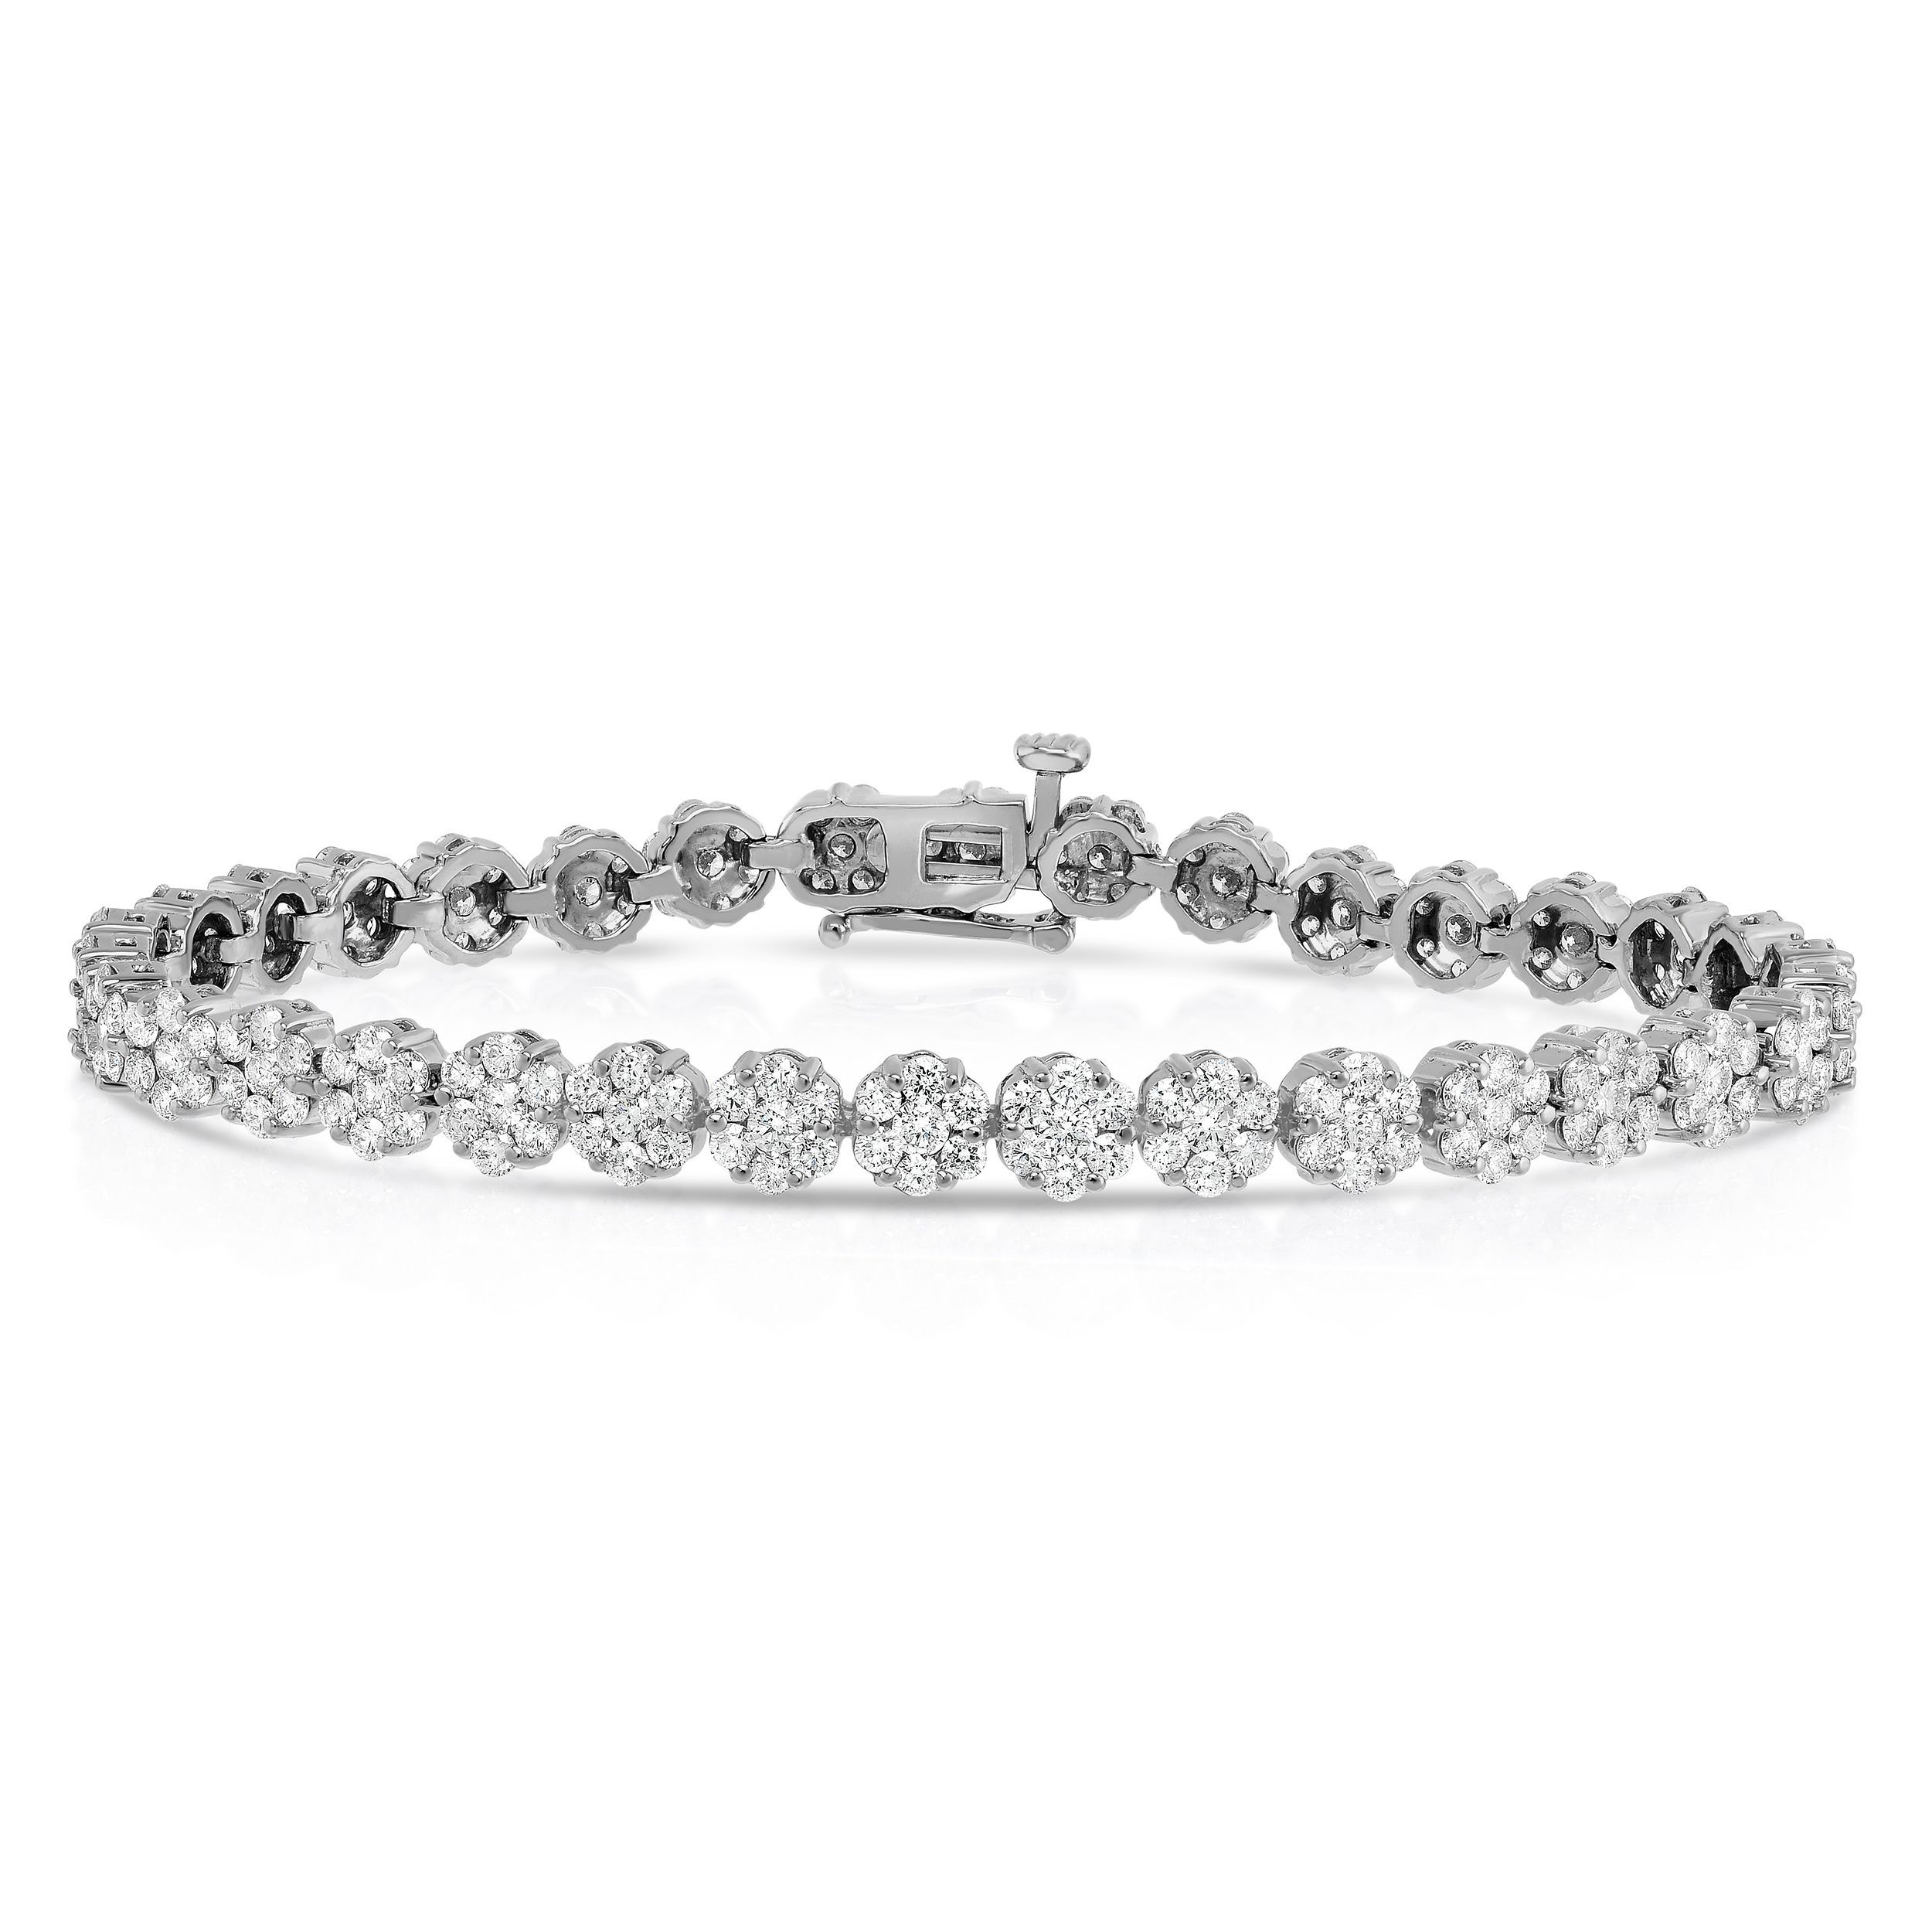 2 20 Carat Clic Tennis Bracelet 14k White Gold Value Collection Houston Diamond District